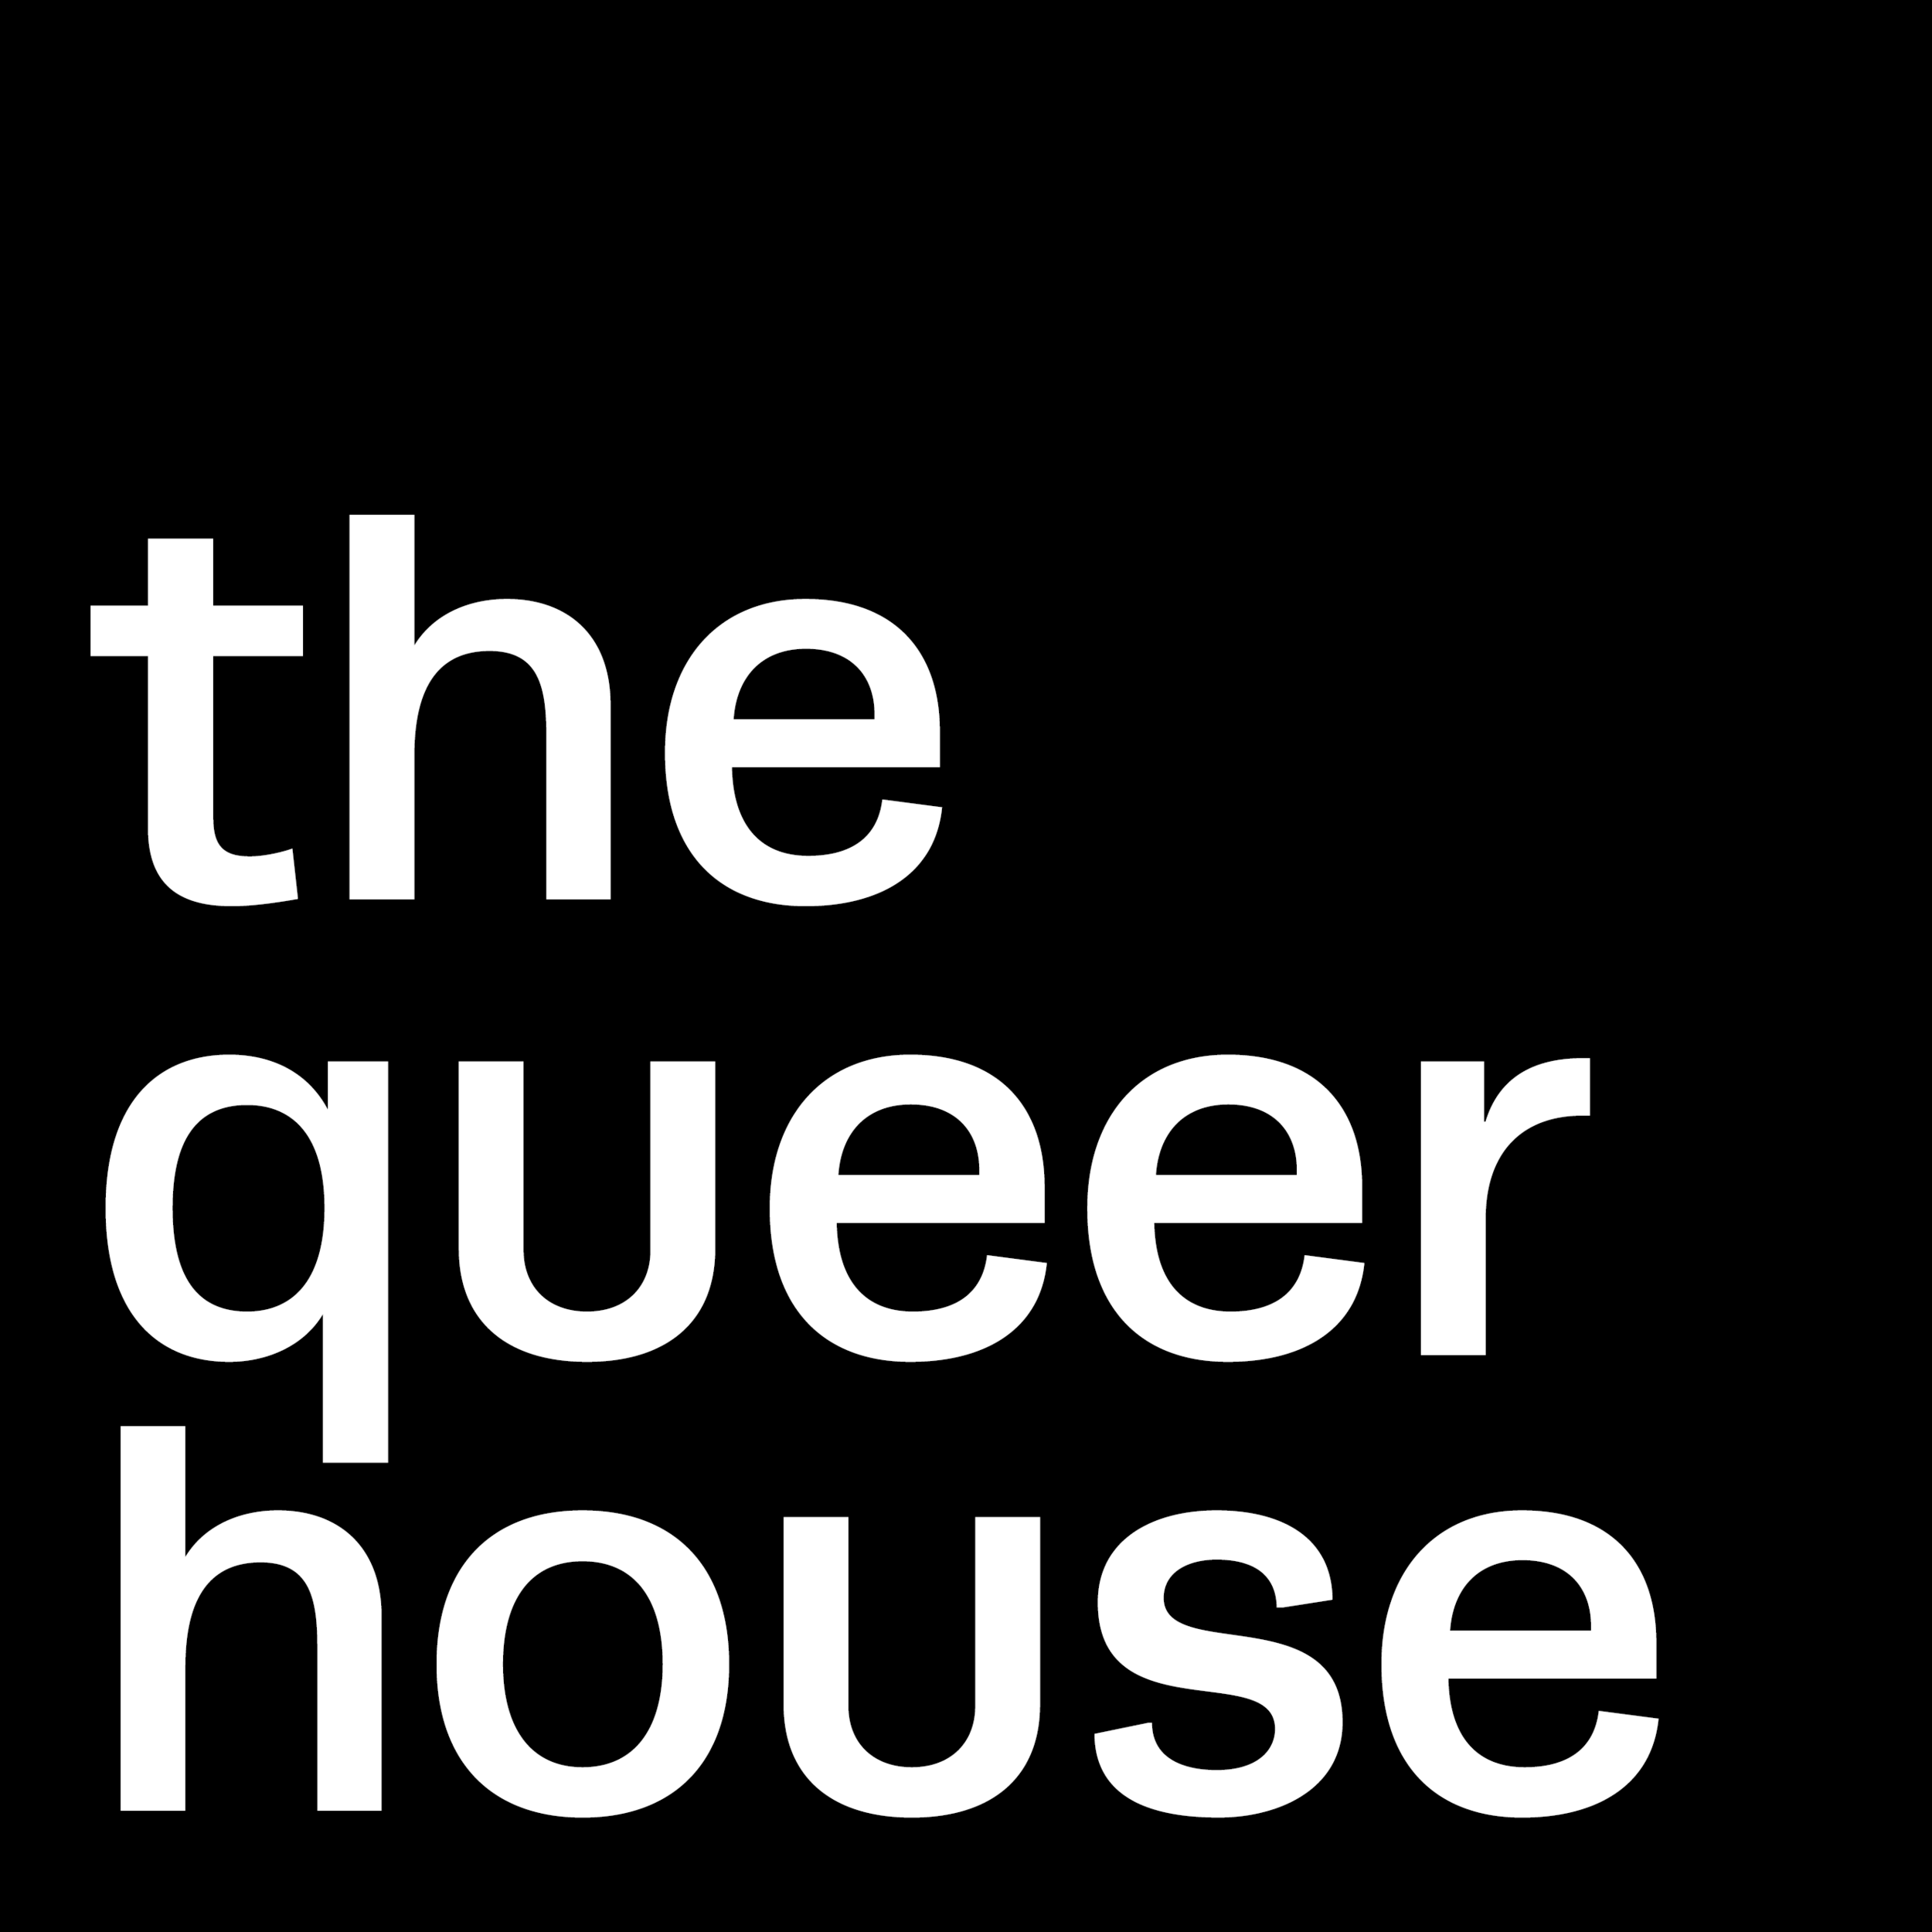 thequeerhouse-blk.png